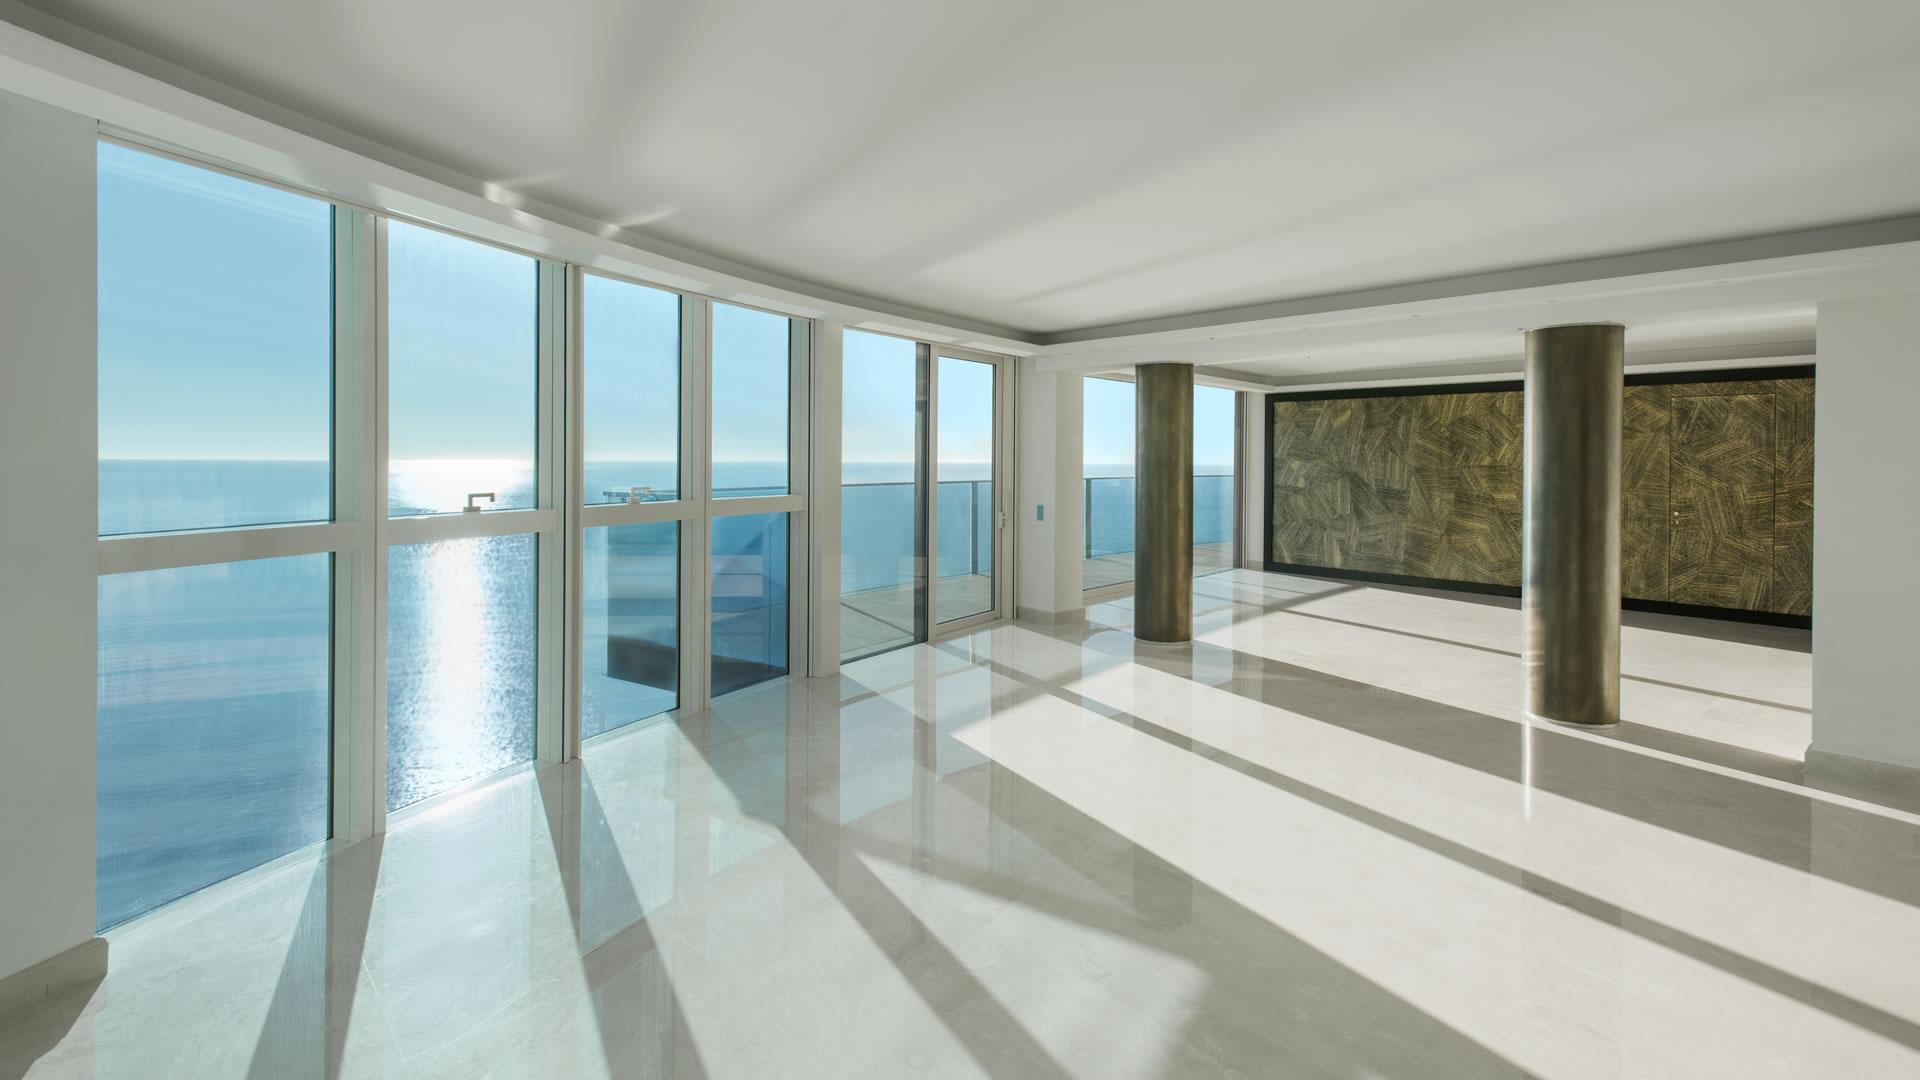 Tour Odéon apartment, Monaco